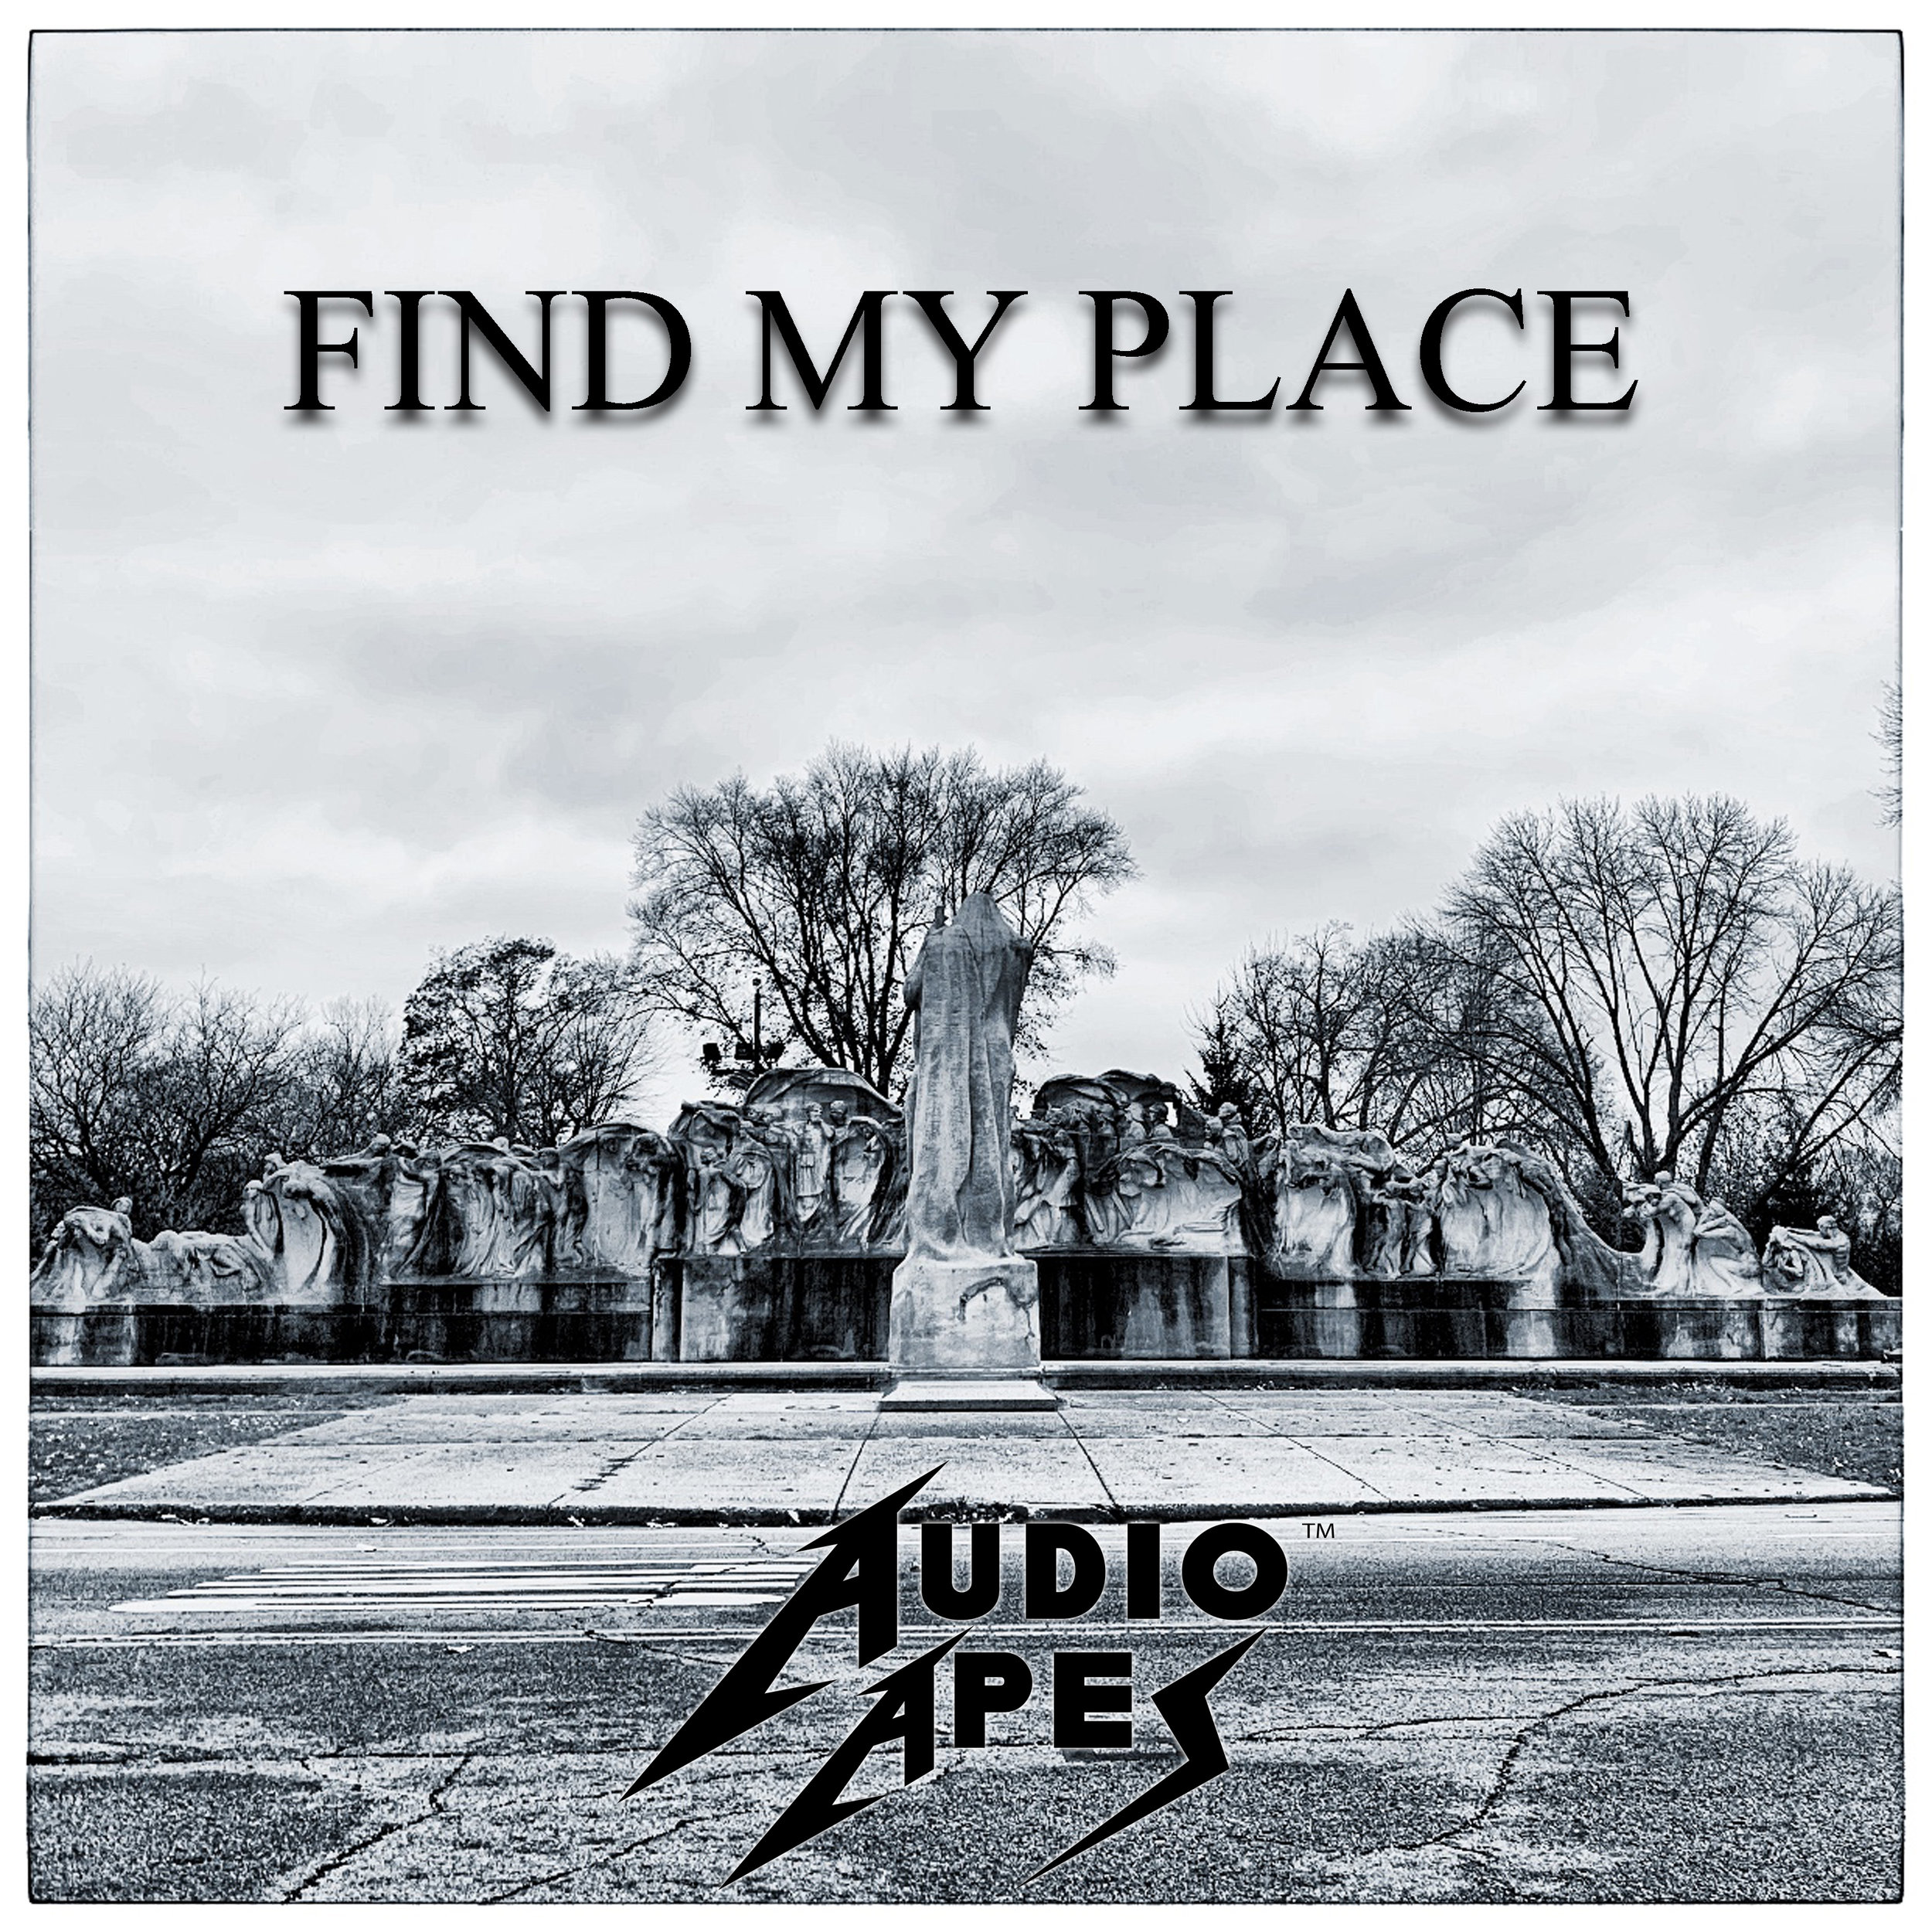 Find My Place Artwork 3000 x 3000.jpg